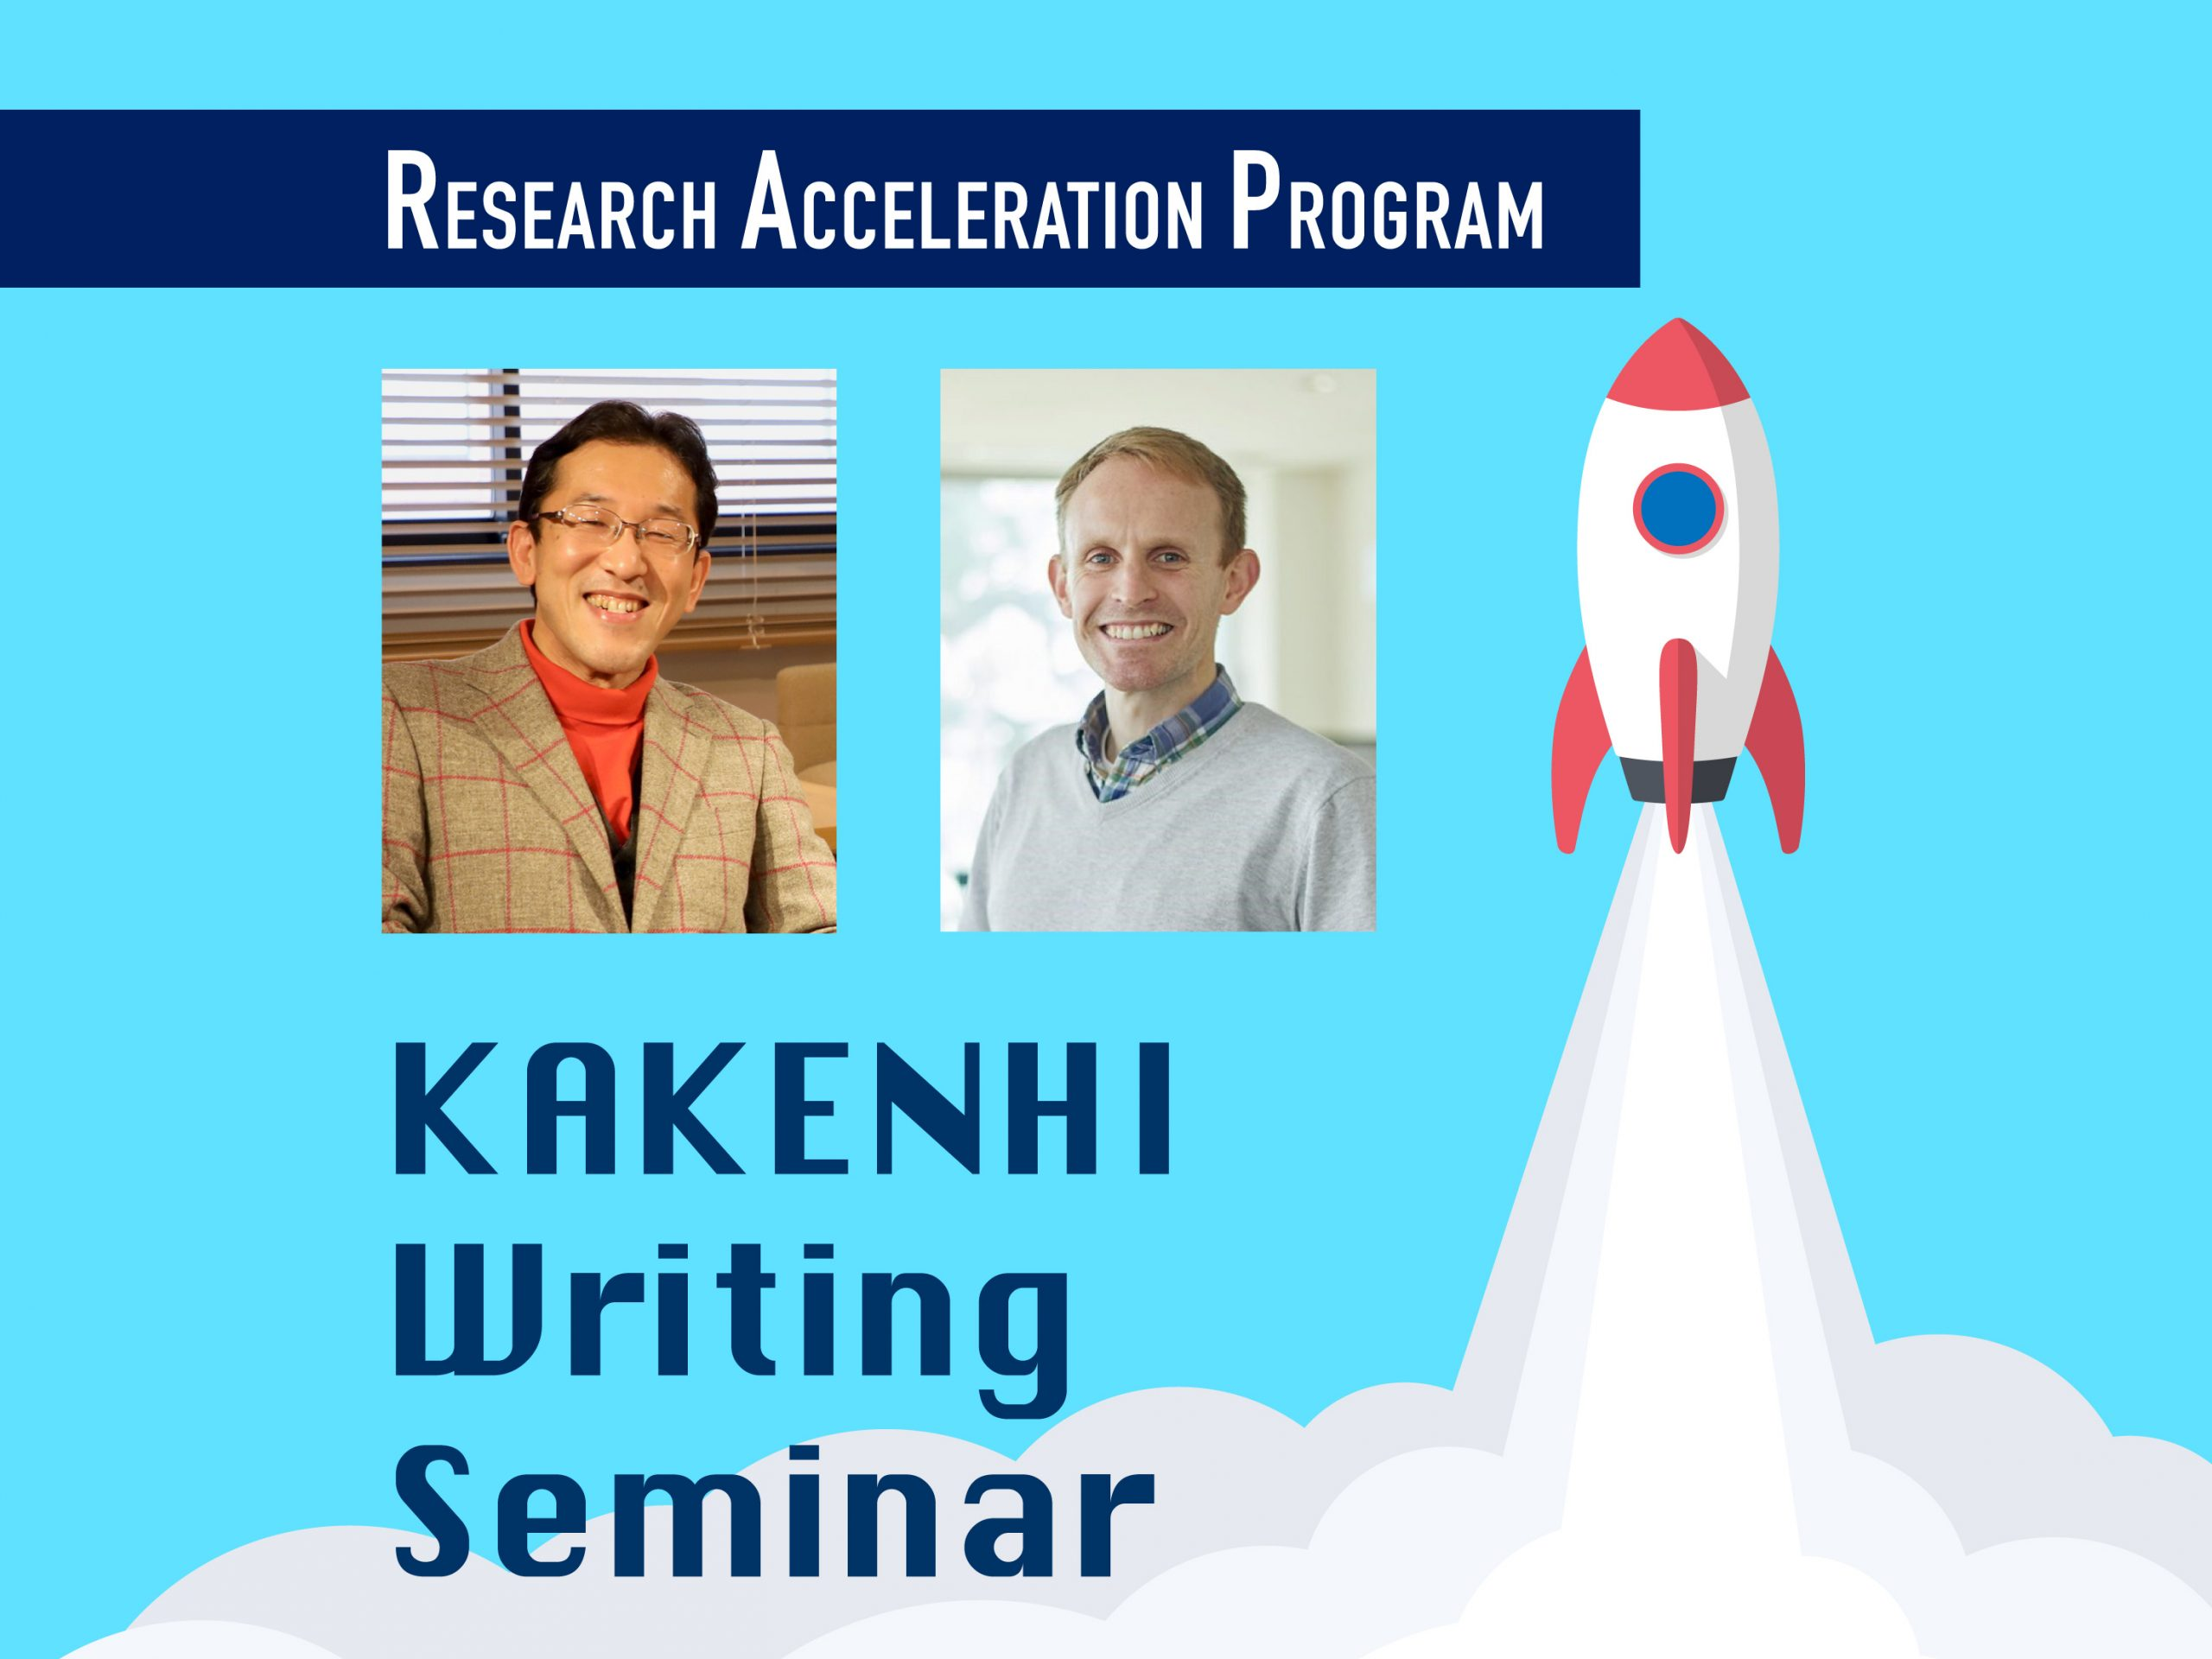 KAKENHI WRITING SEMINAR Telling your research story effectively